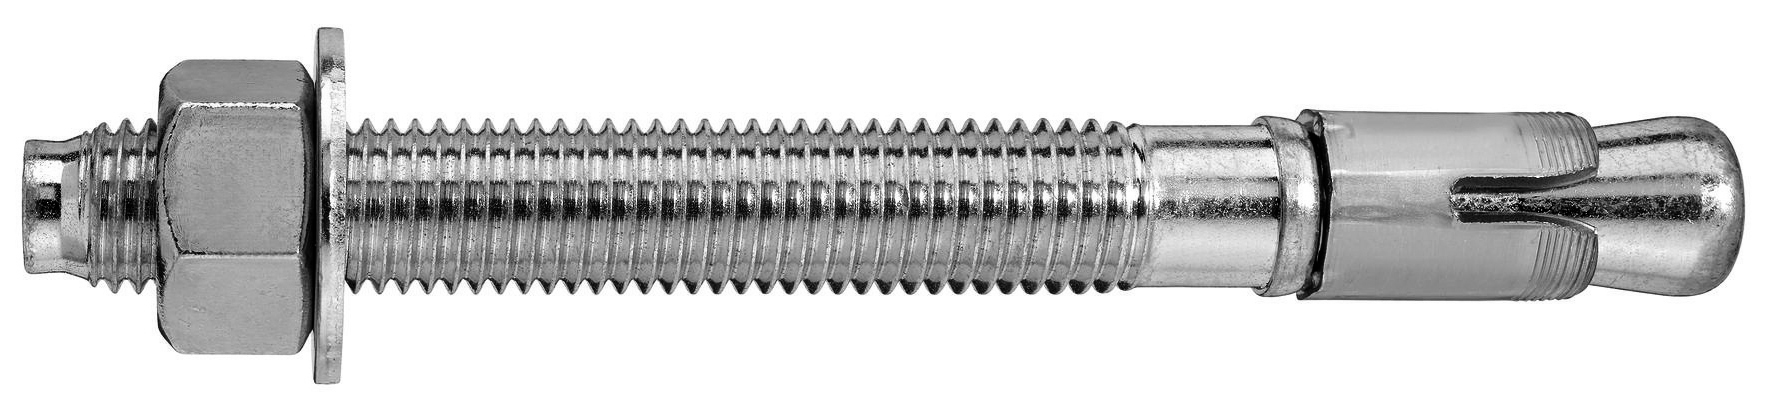 Stainless Steel CBU Expansive Wedge Anchor Bolt Kit